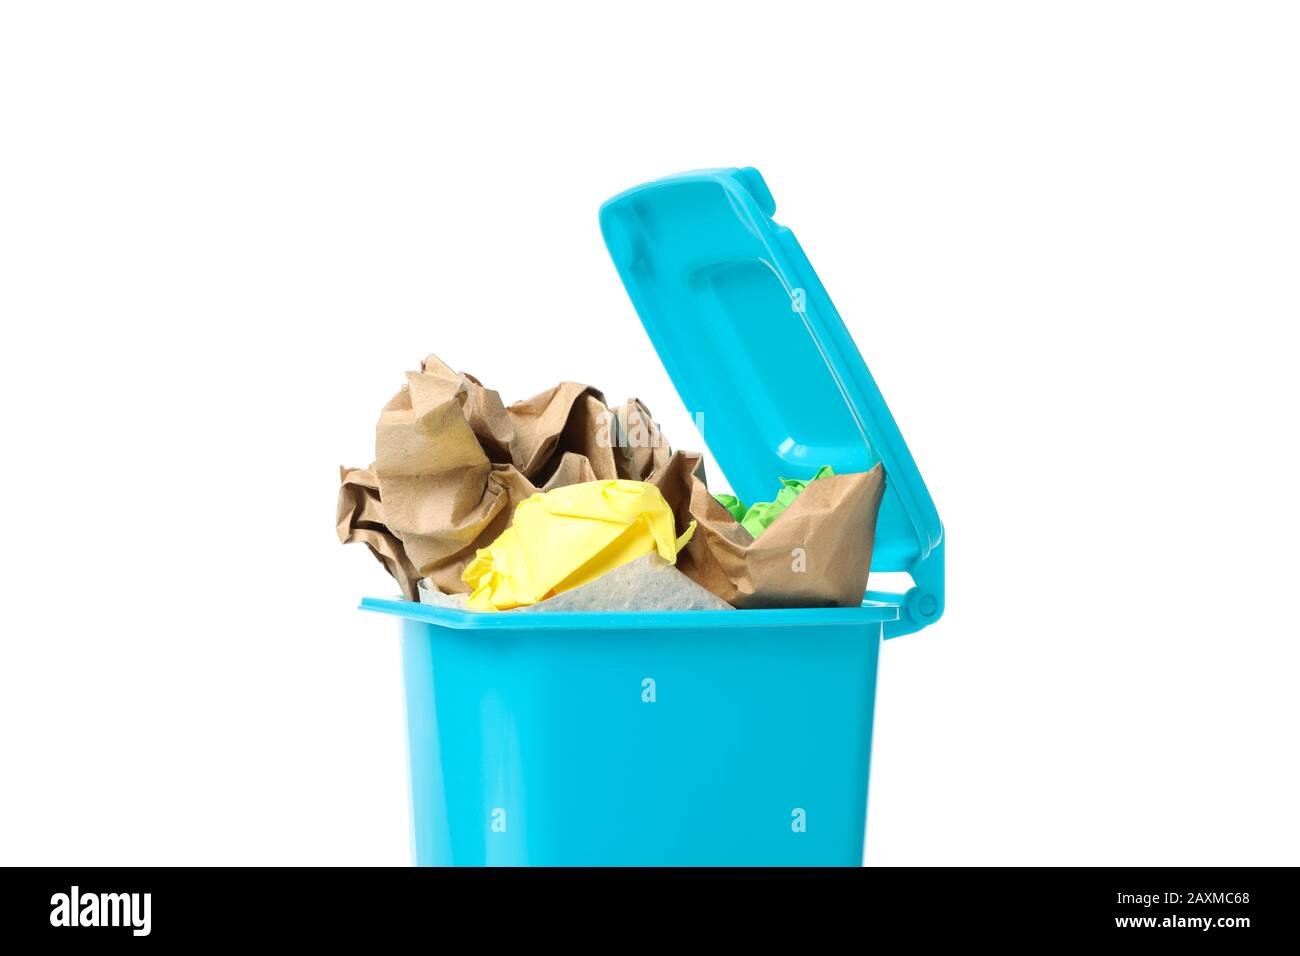 Recycle bin with trash isolated on white background Stock Photo